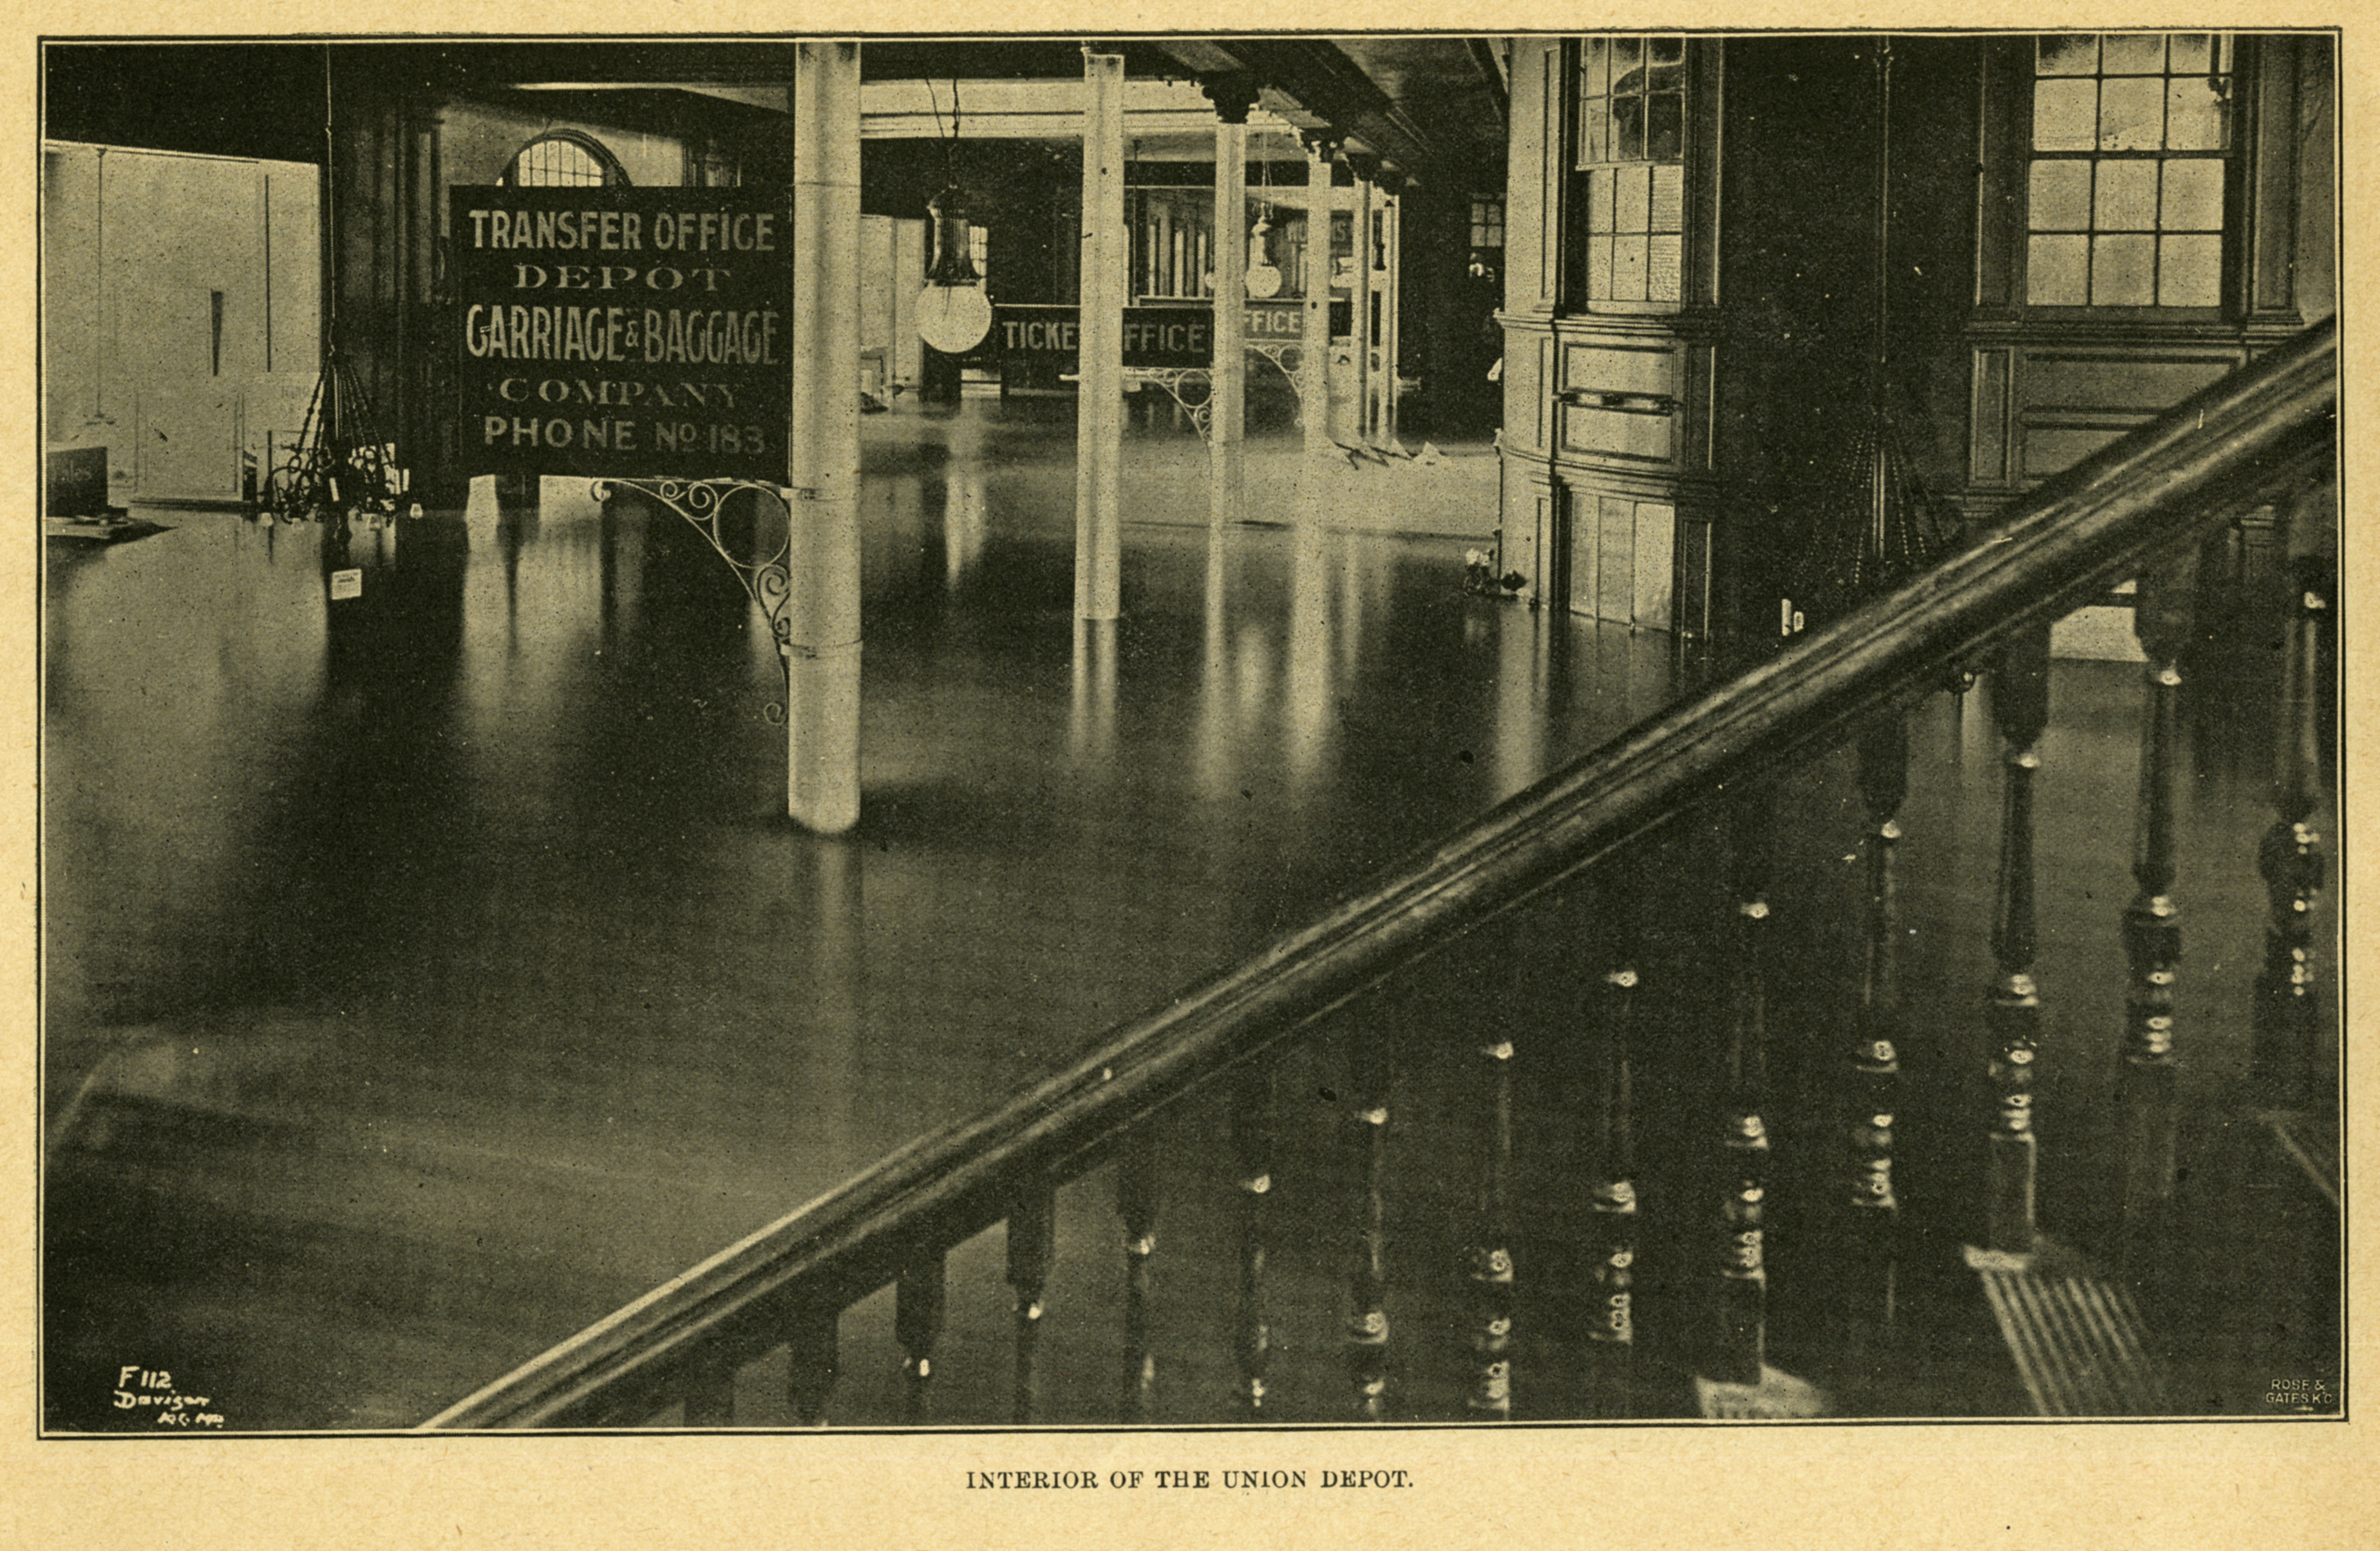 The high-water mark in the depot's waiting room reached 6 feet 7 inches